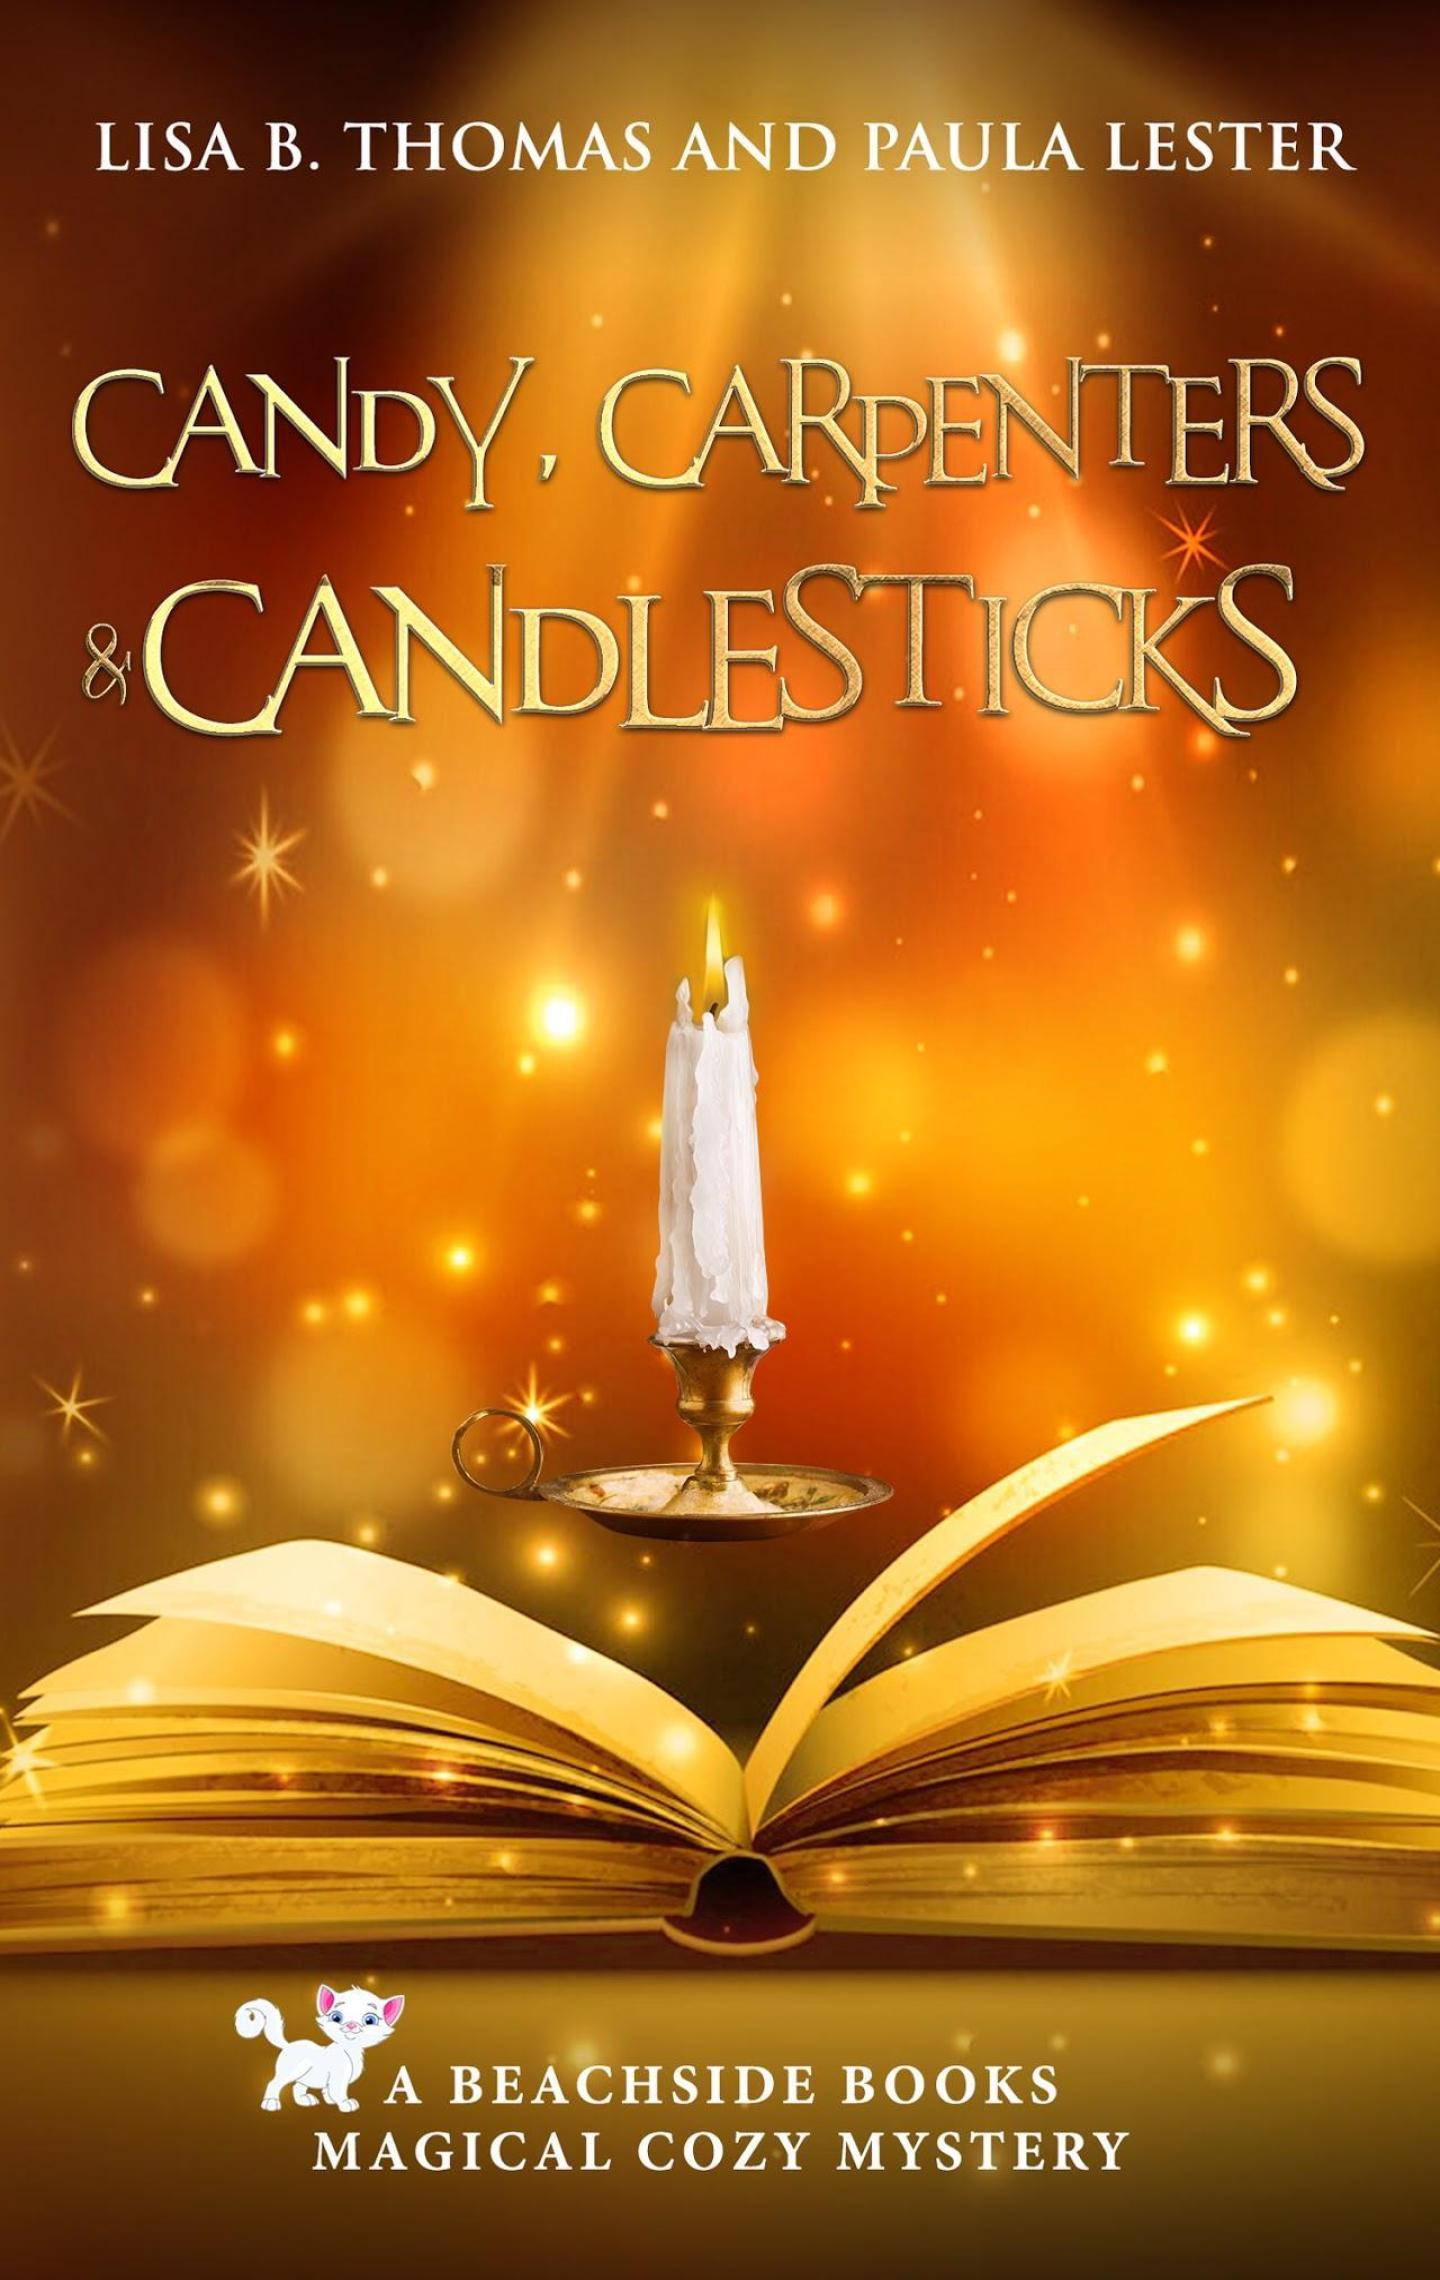 Candy, Carpenters and Candlesticks